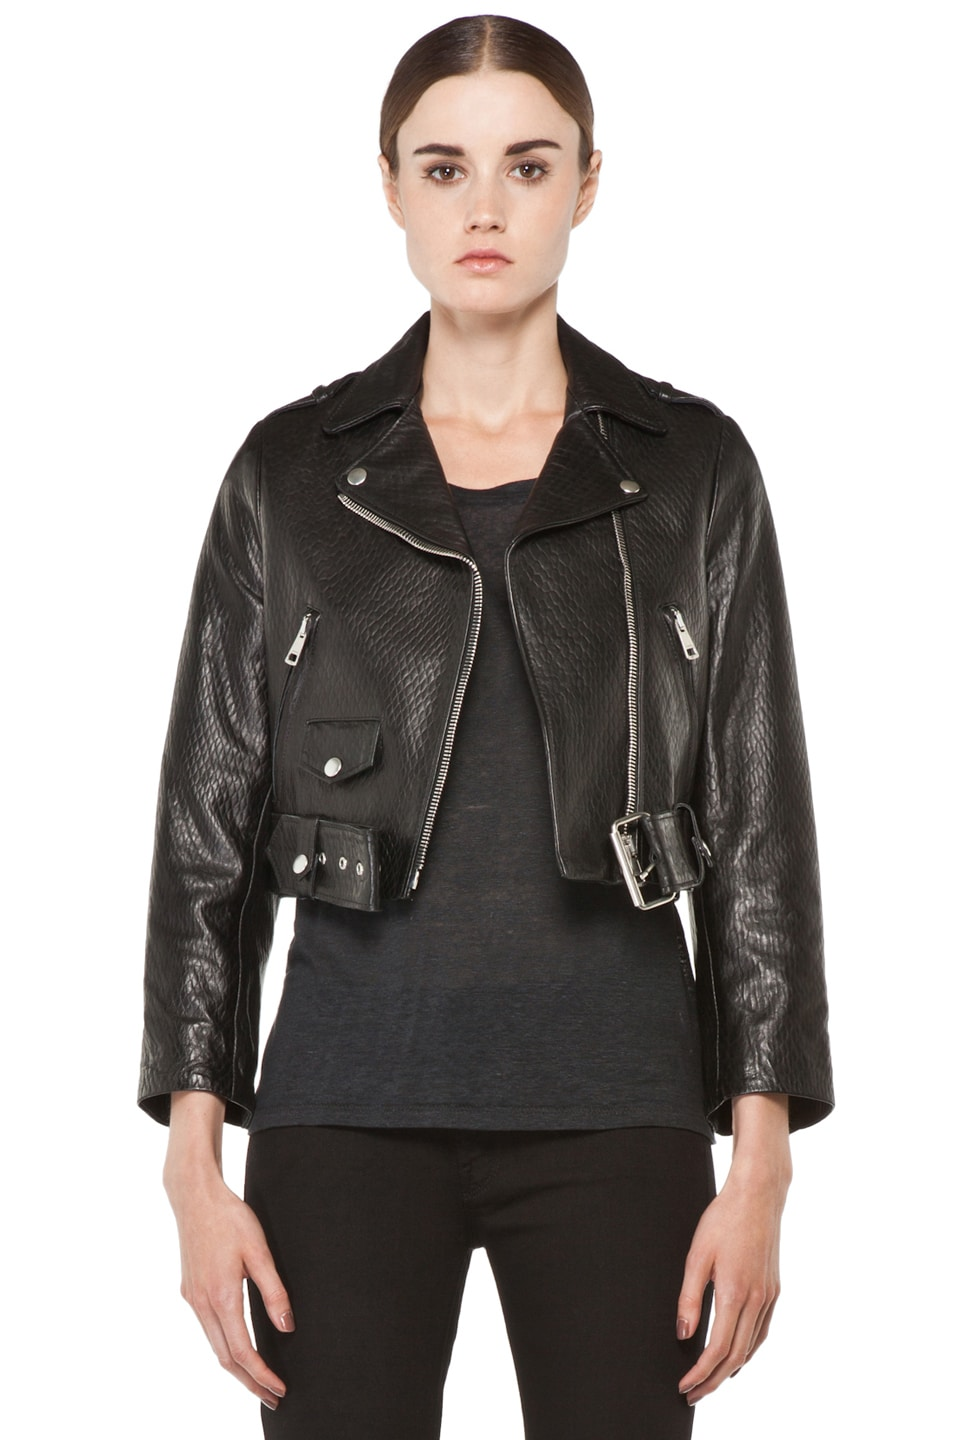 Acne Studios Väska : Acne studios mape leather jacket in black fwrd